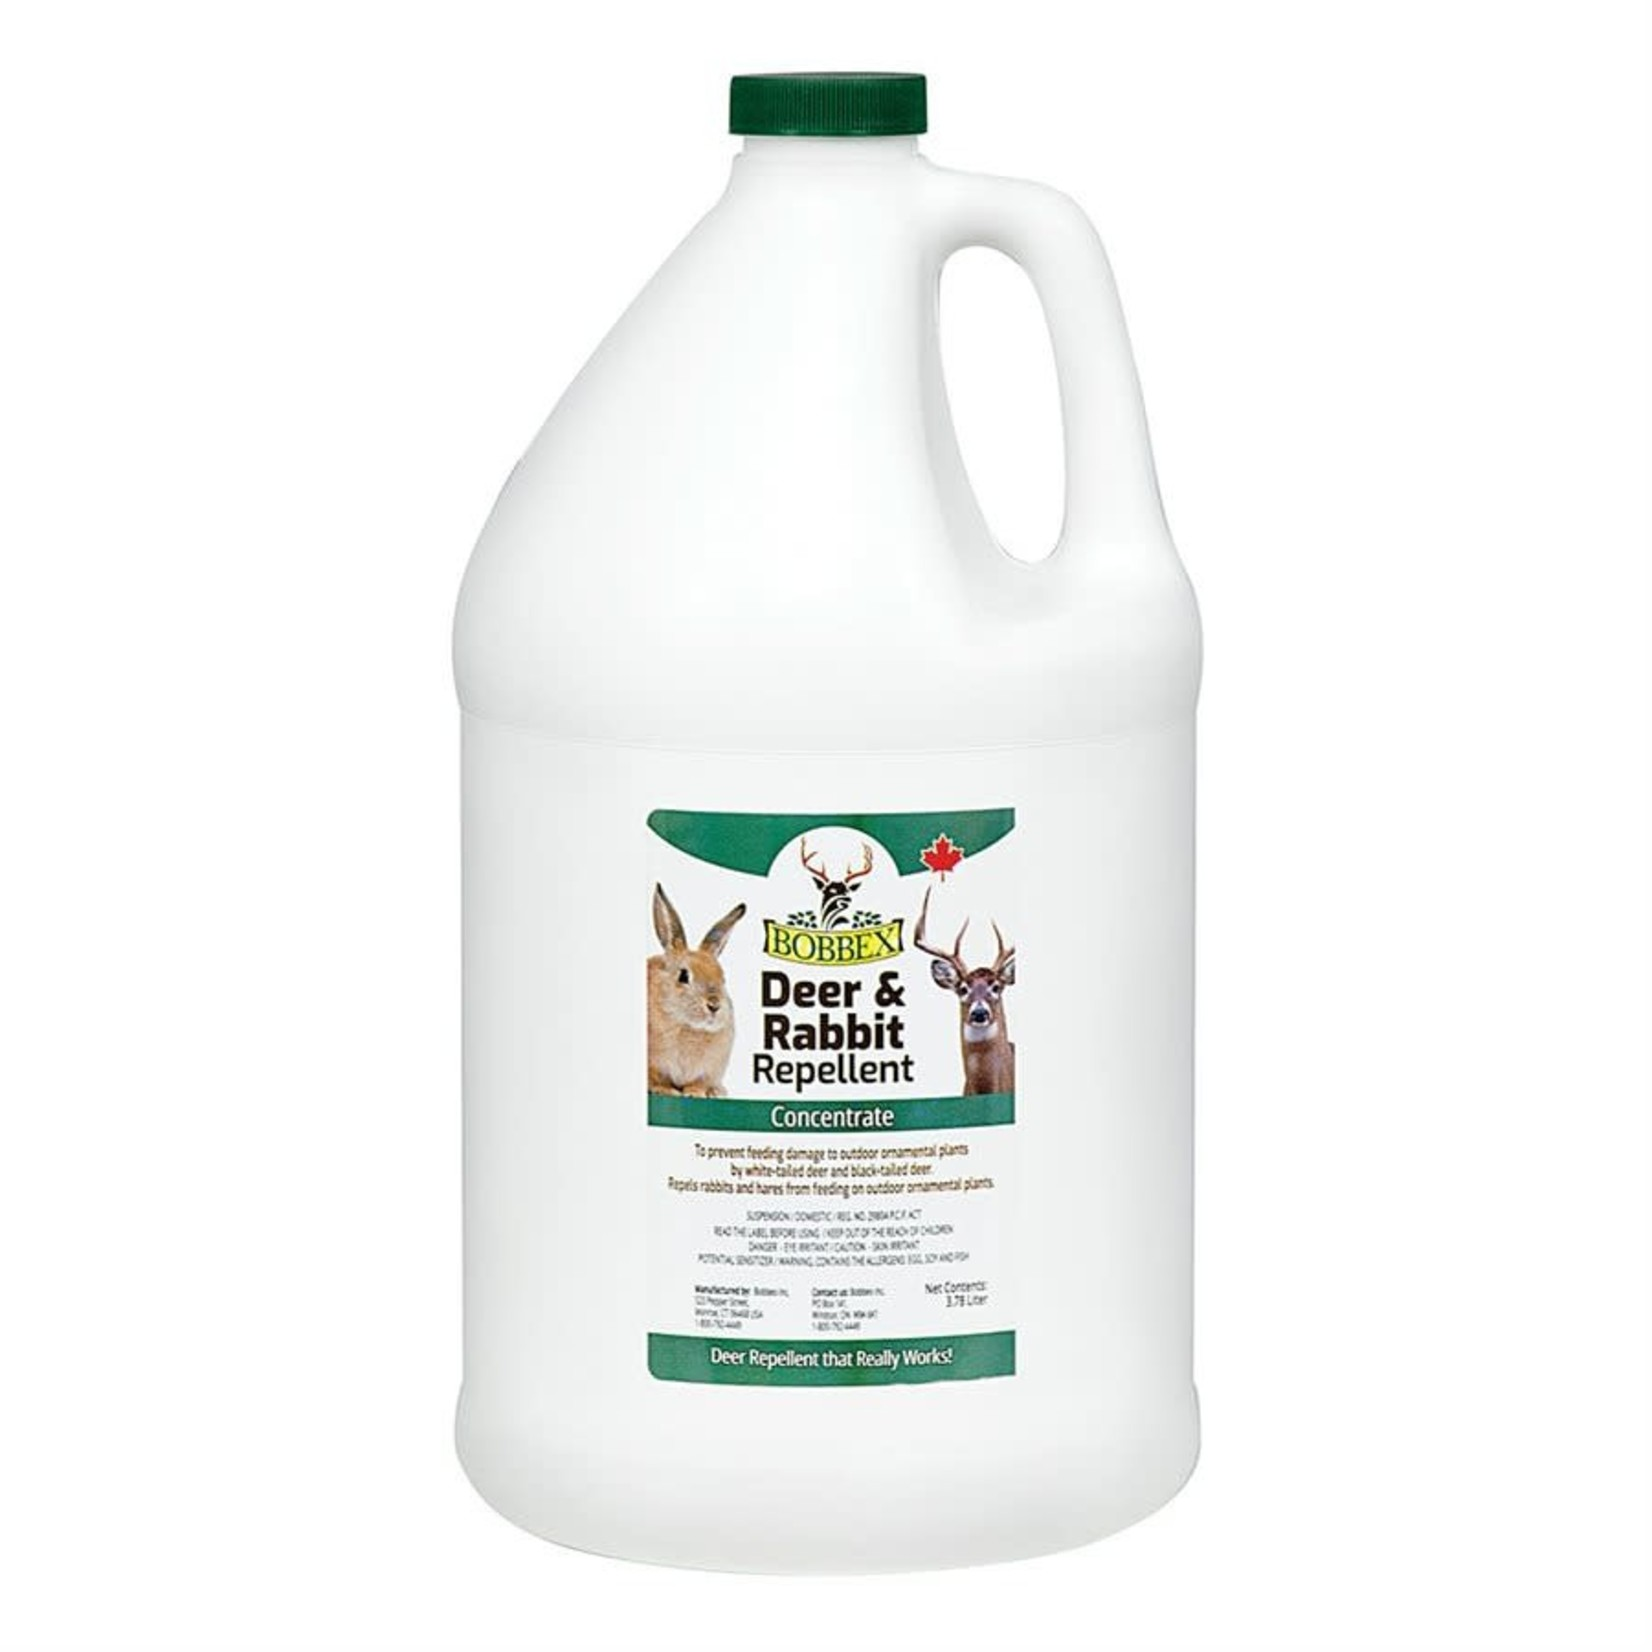 Bobbex (deer/rabbit) Repel 3.87L Concentrate